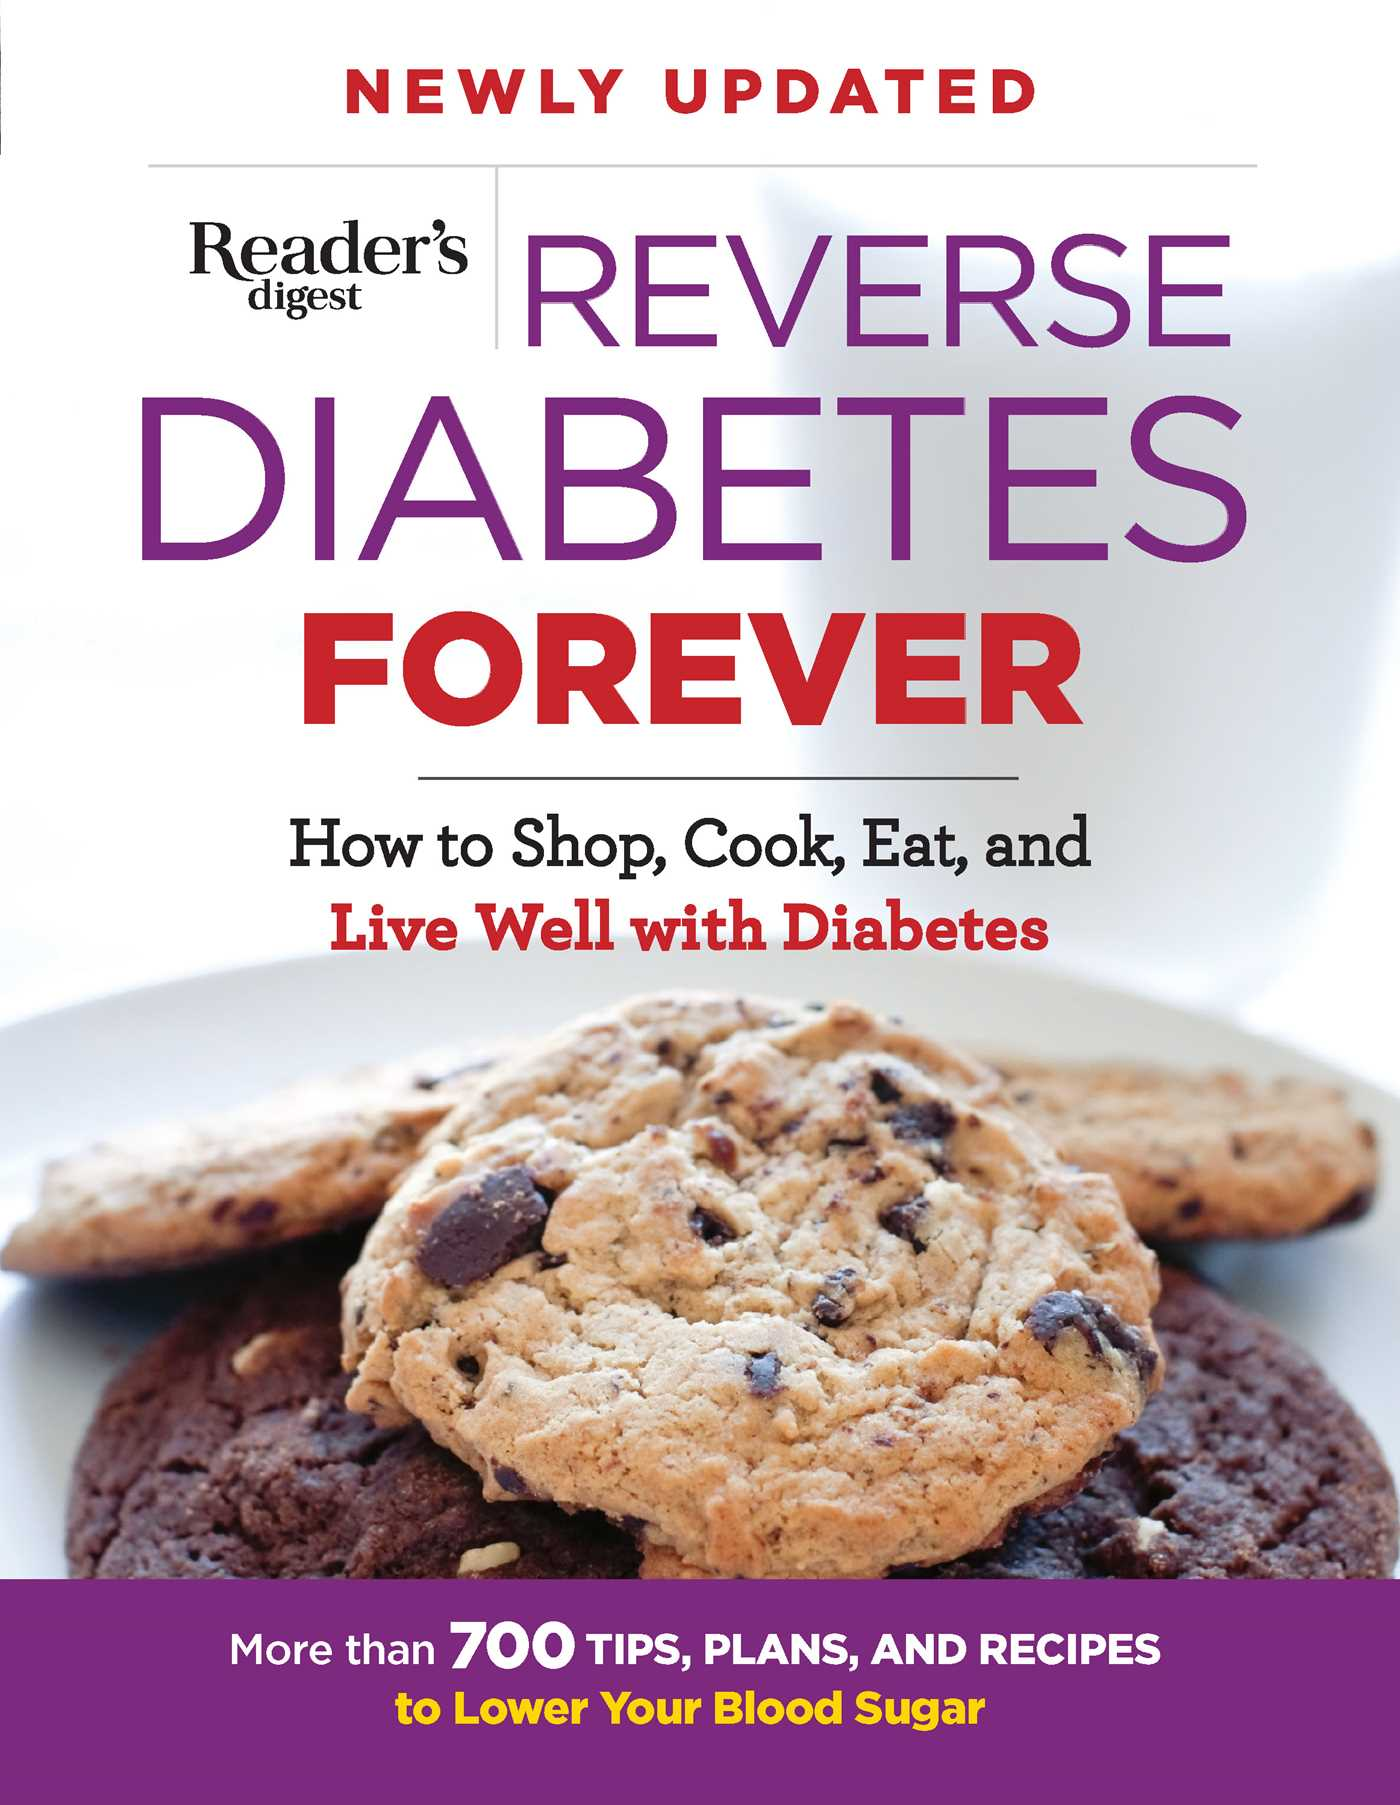 Reverse diabetes forever newly updated 9781621453277 hr